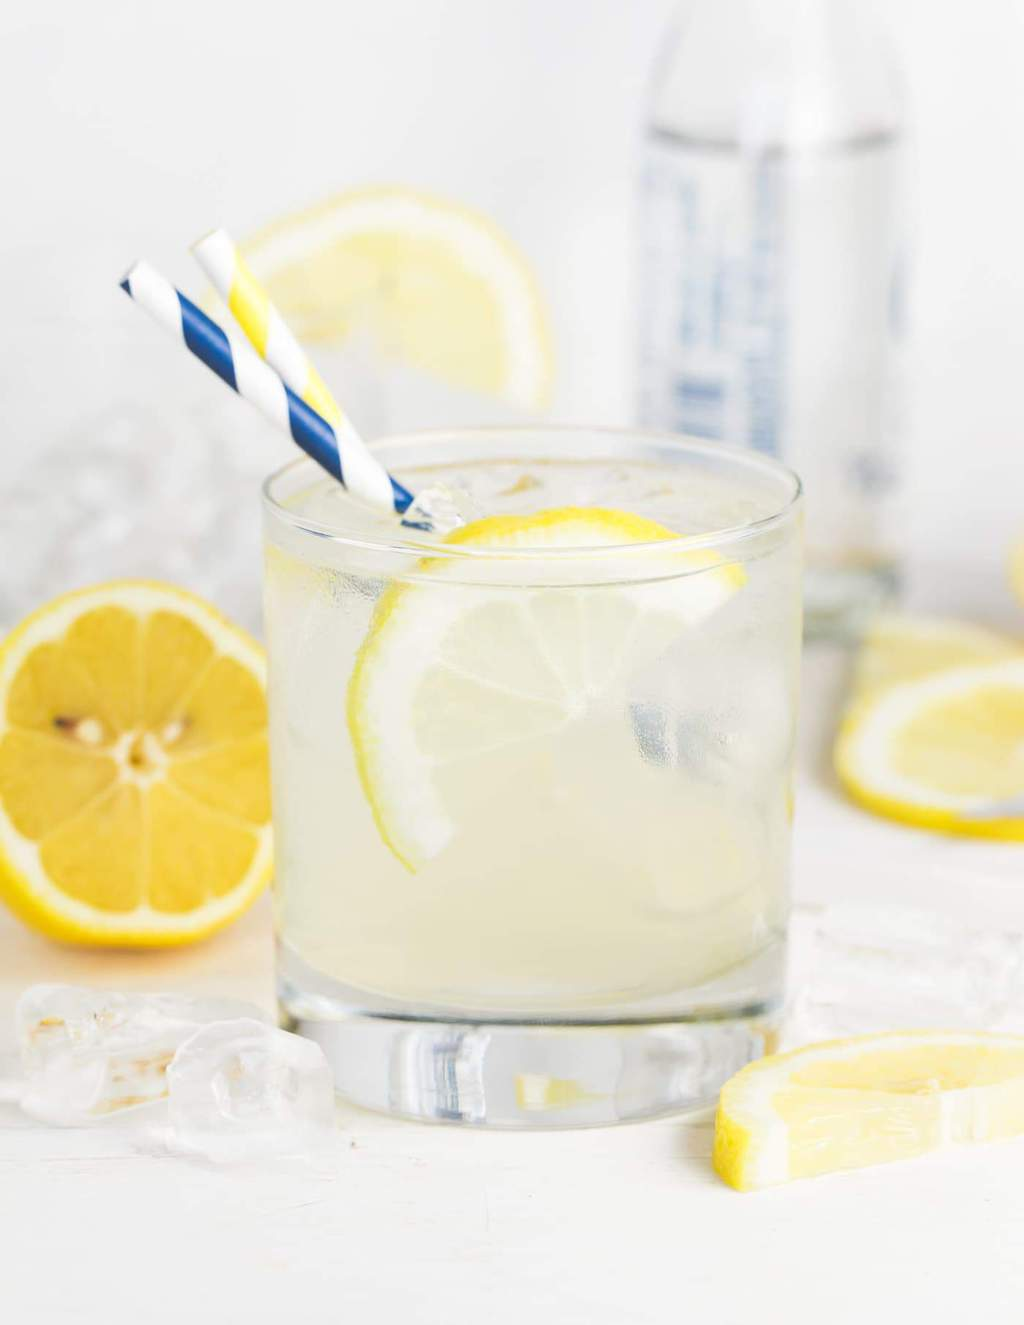 Lowball glass of vodka and elderflower lemonade. Garnished with lemon slices and blue and white striped straws.